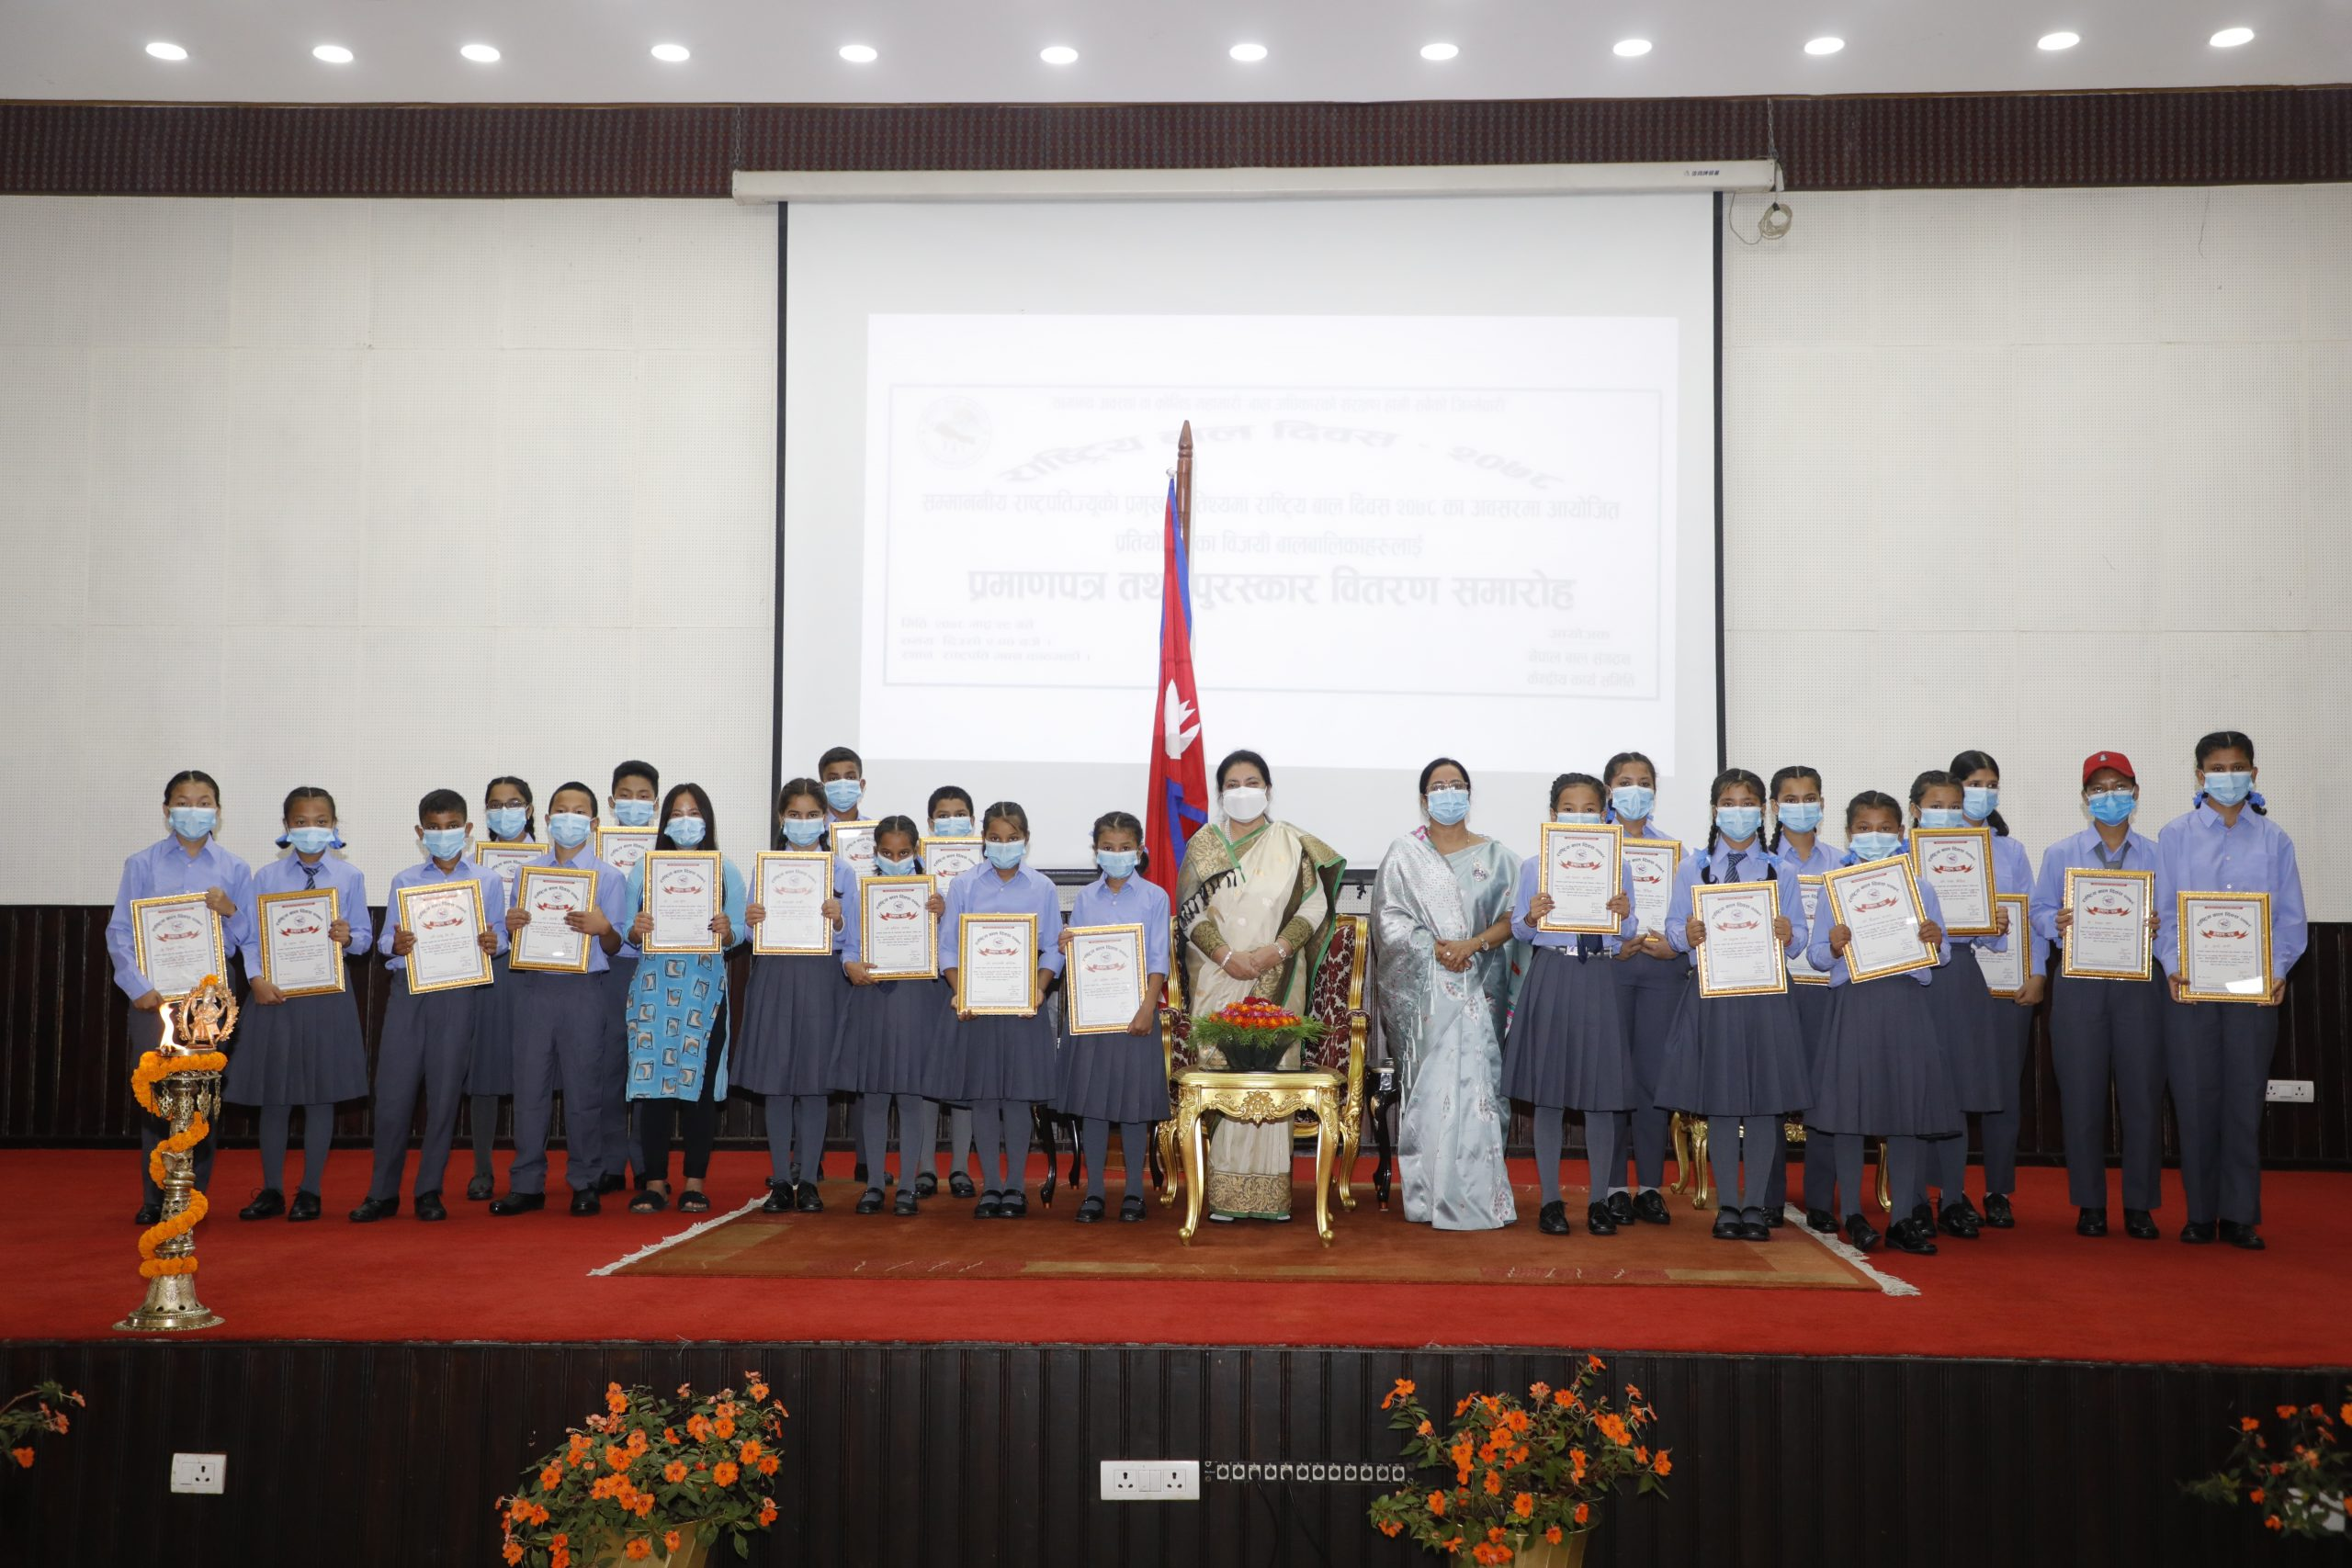 Winners of competition held for Children's Day 2078